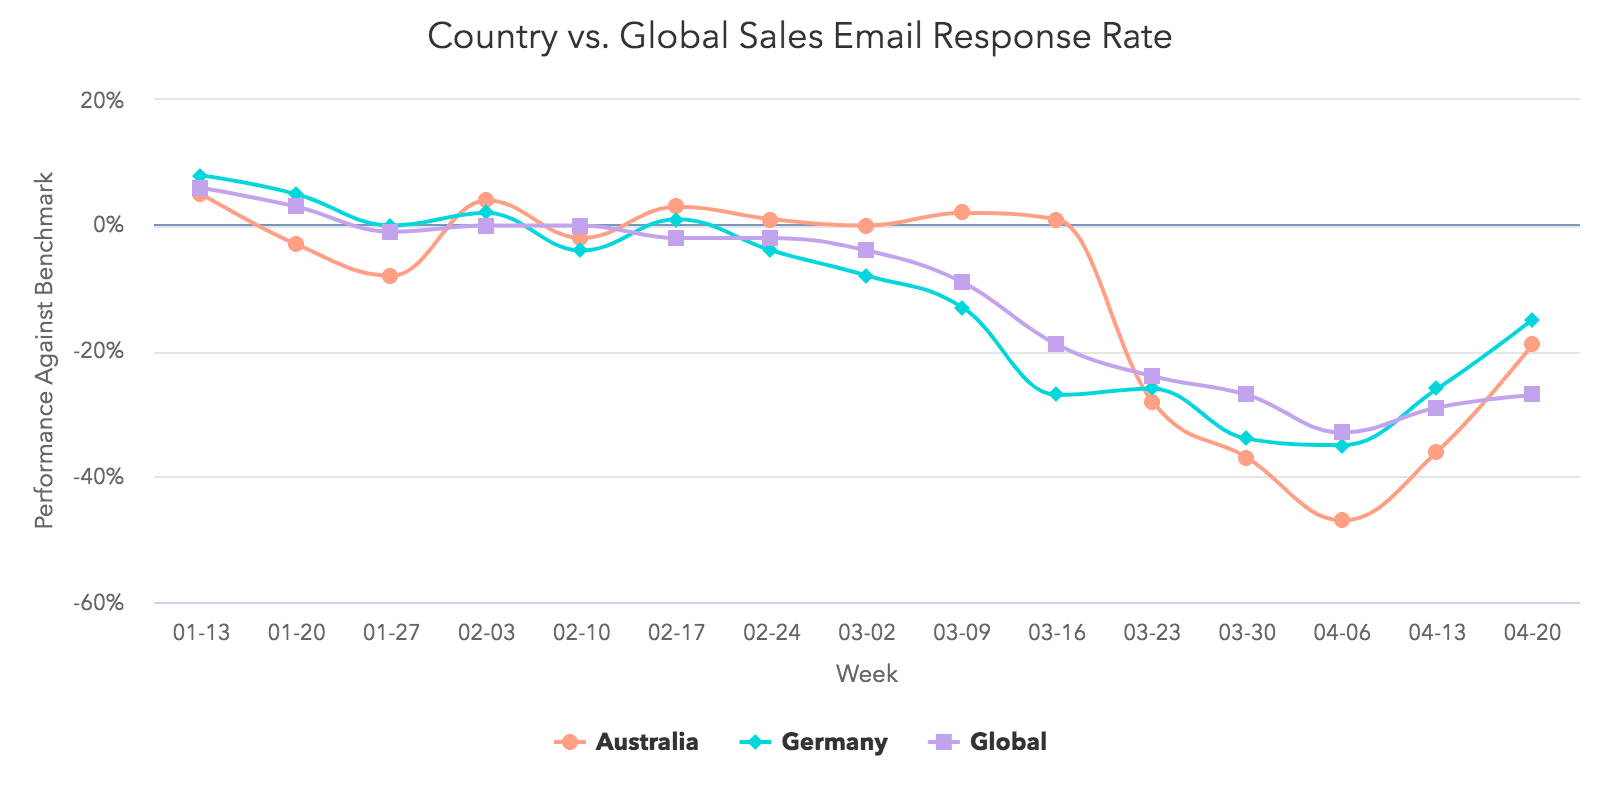 Country vs Global Sales Email Response